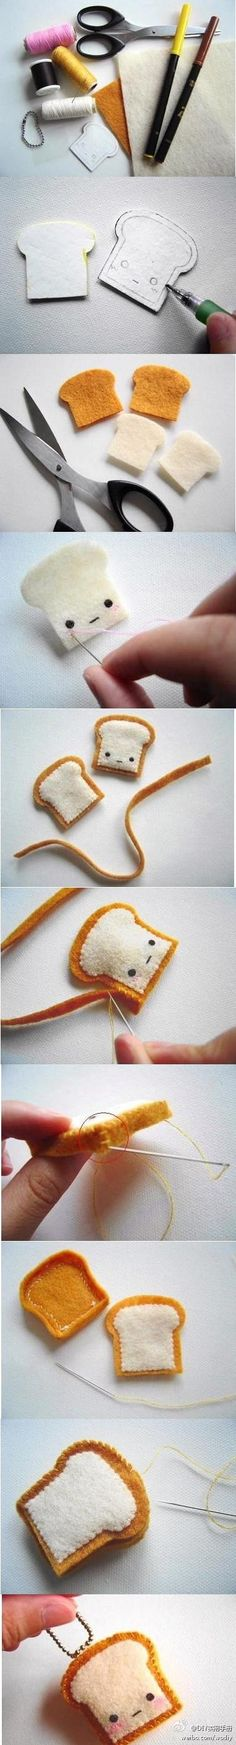 I keep looking at this pin and I want to make these little bread guys! They are so CUTE. Step by step pin all in photos as you can see.